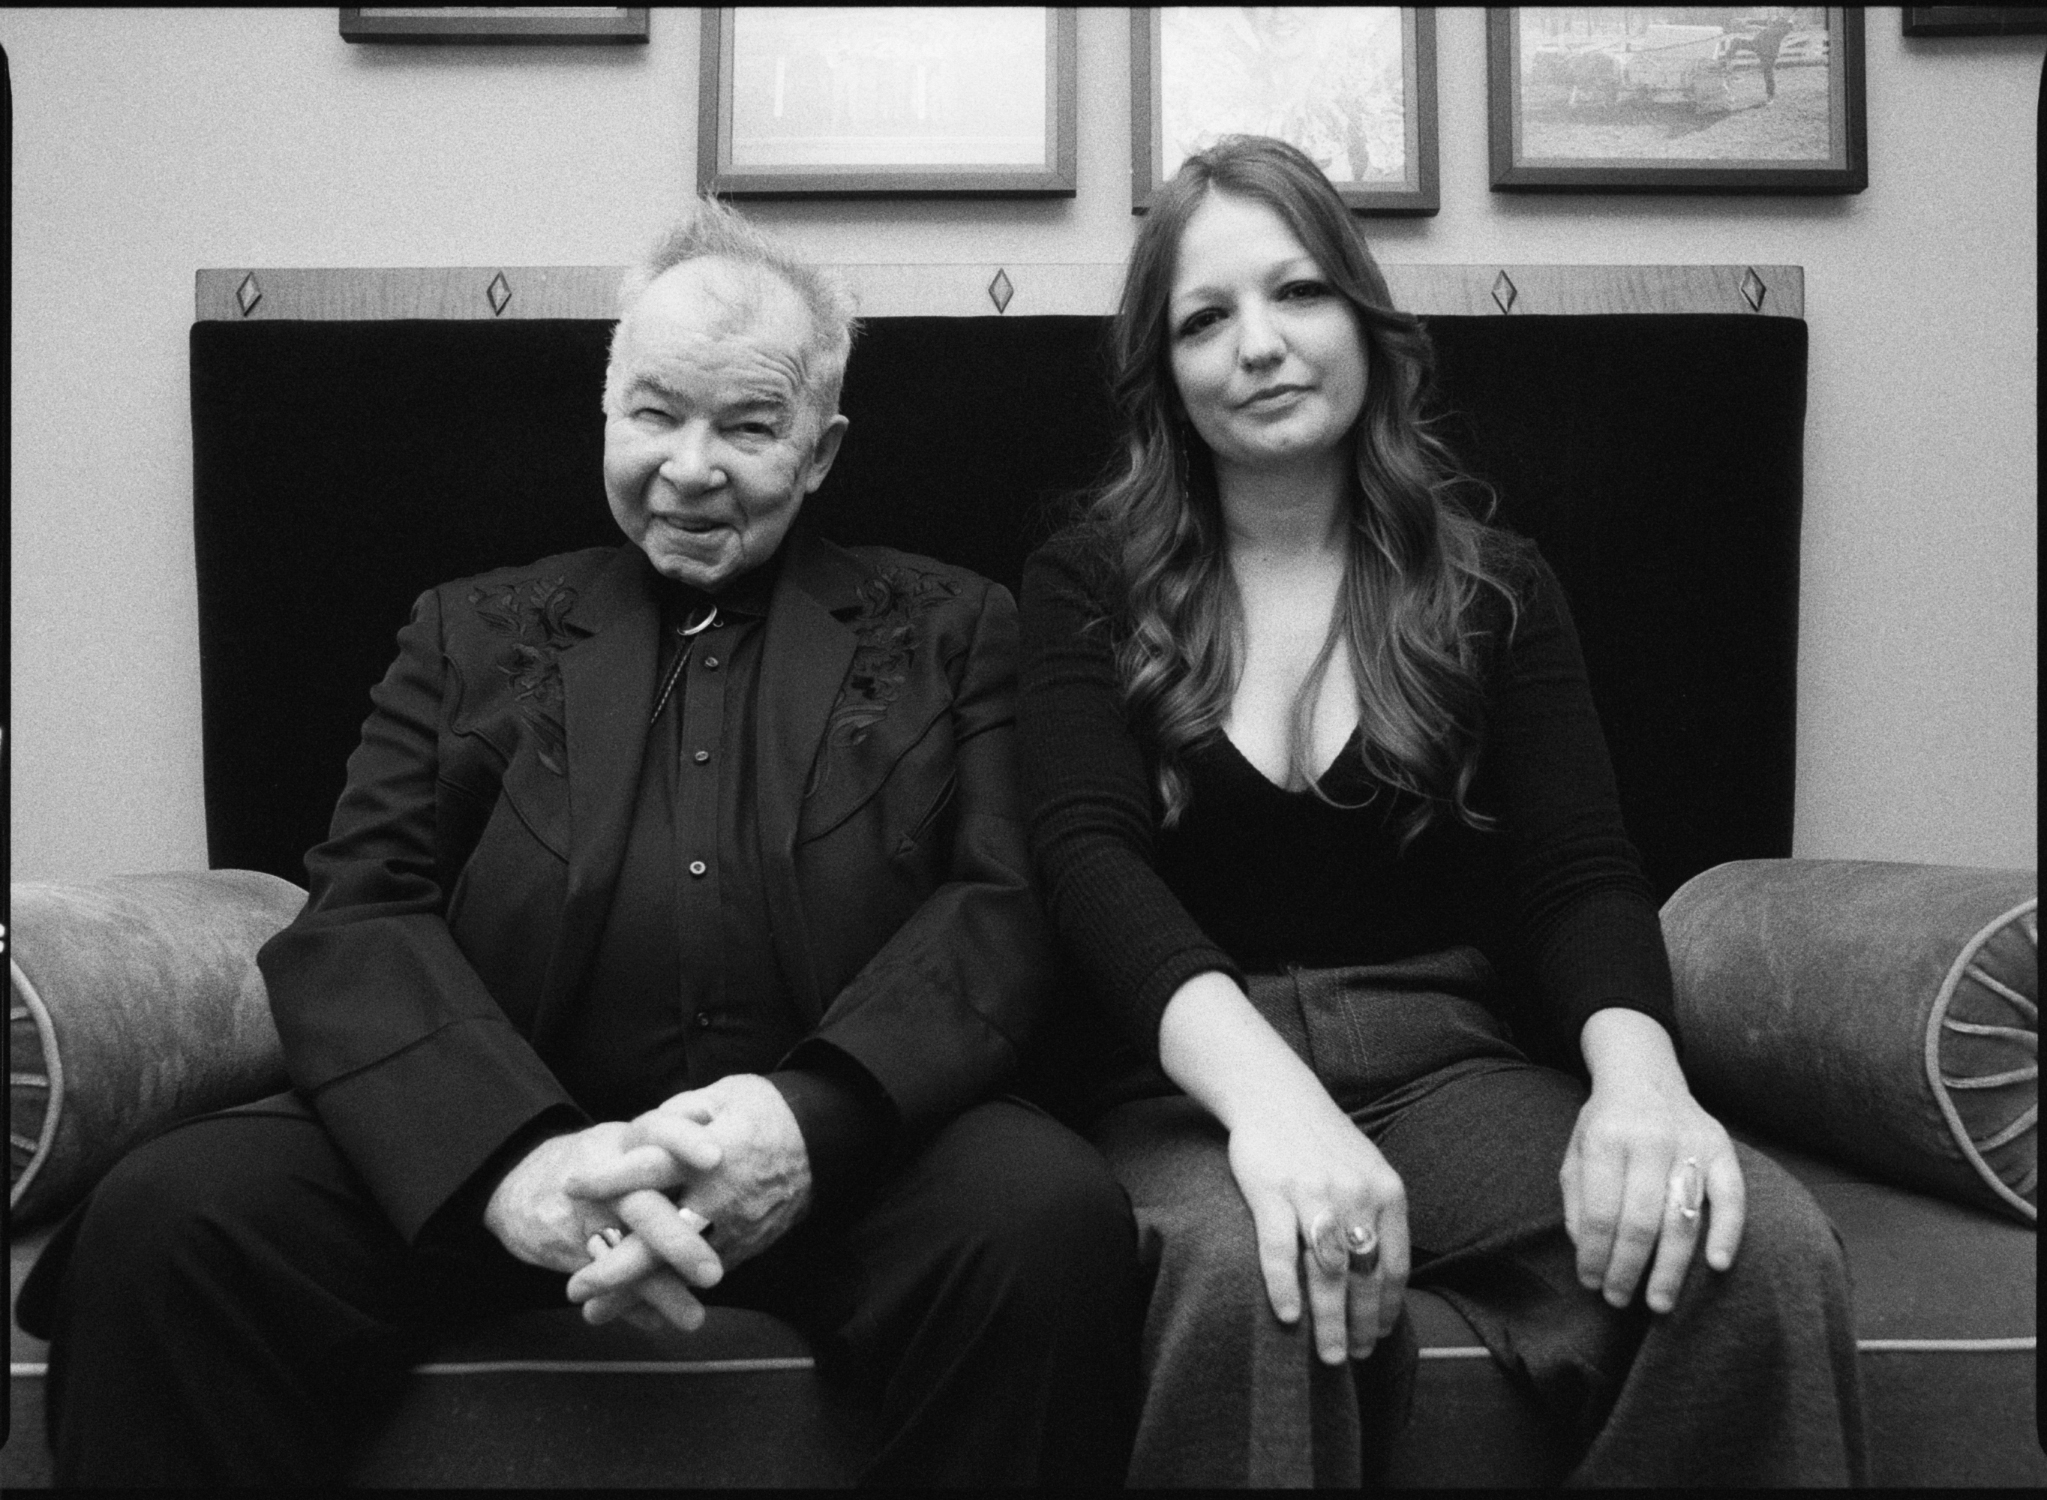 A portrait of Kelsey Waldon and John Prine